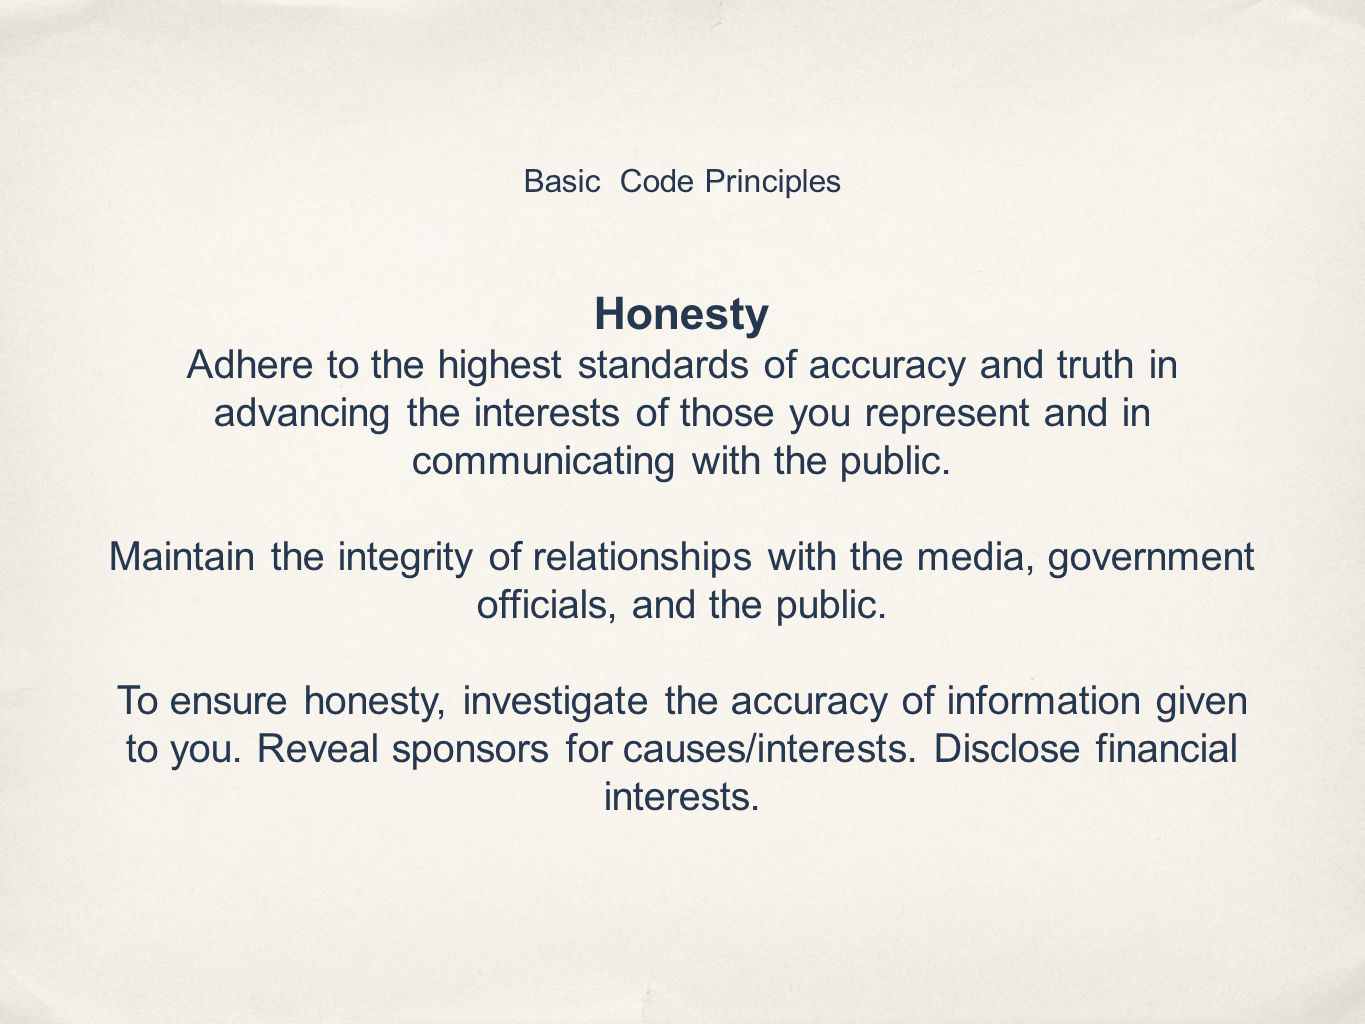 Basic Code Principles Honesty Adhere to the highest standards of accuracy and truth in advancing the interests of those you represent and in communicating with the public.